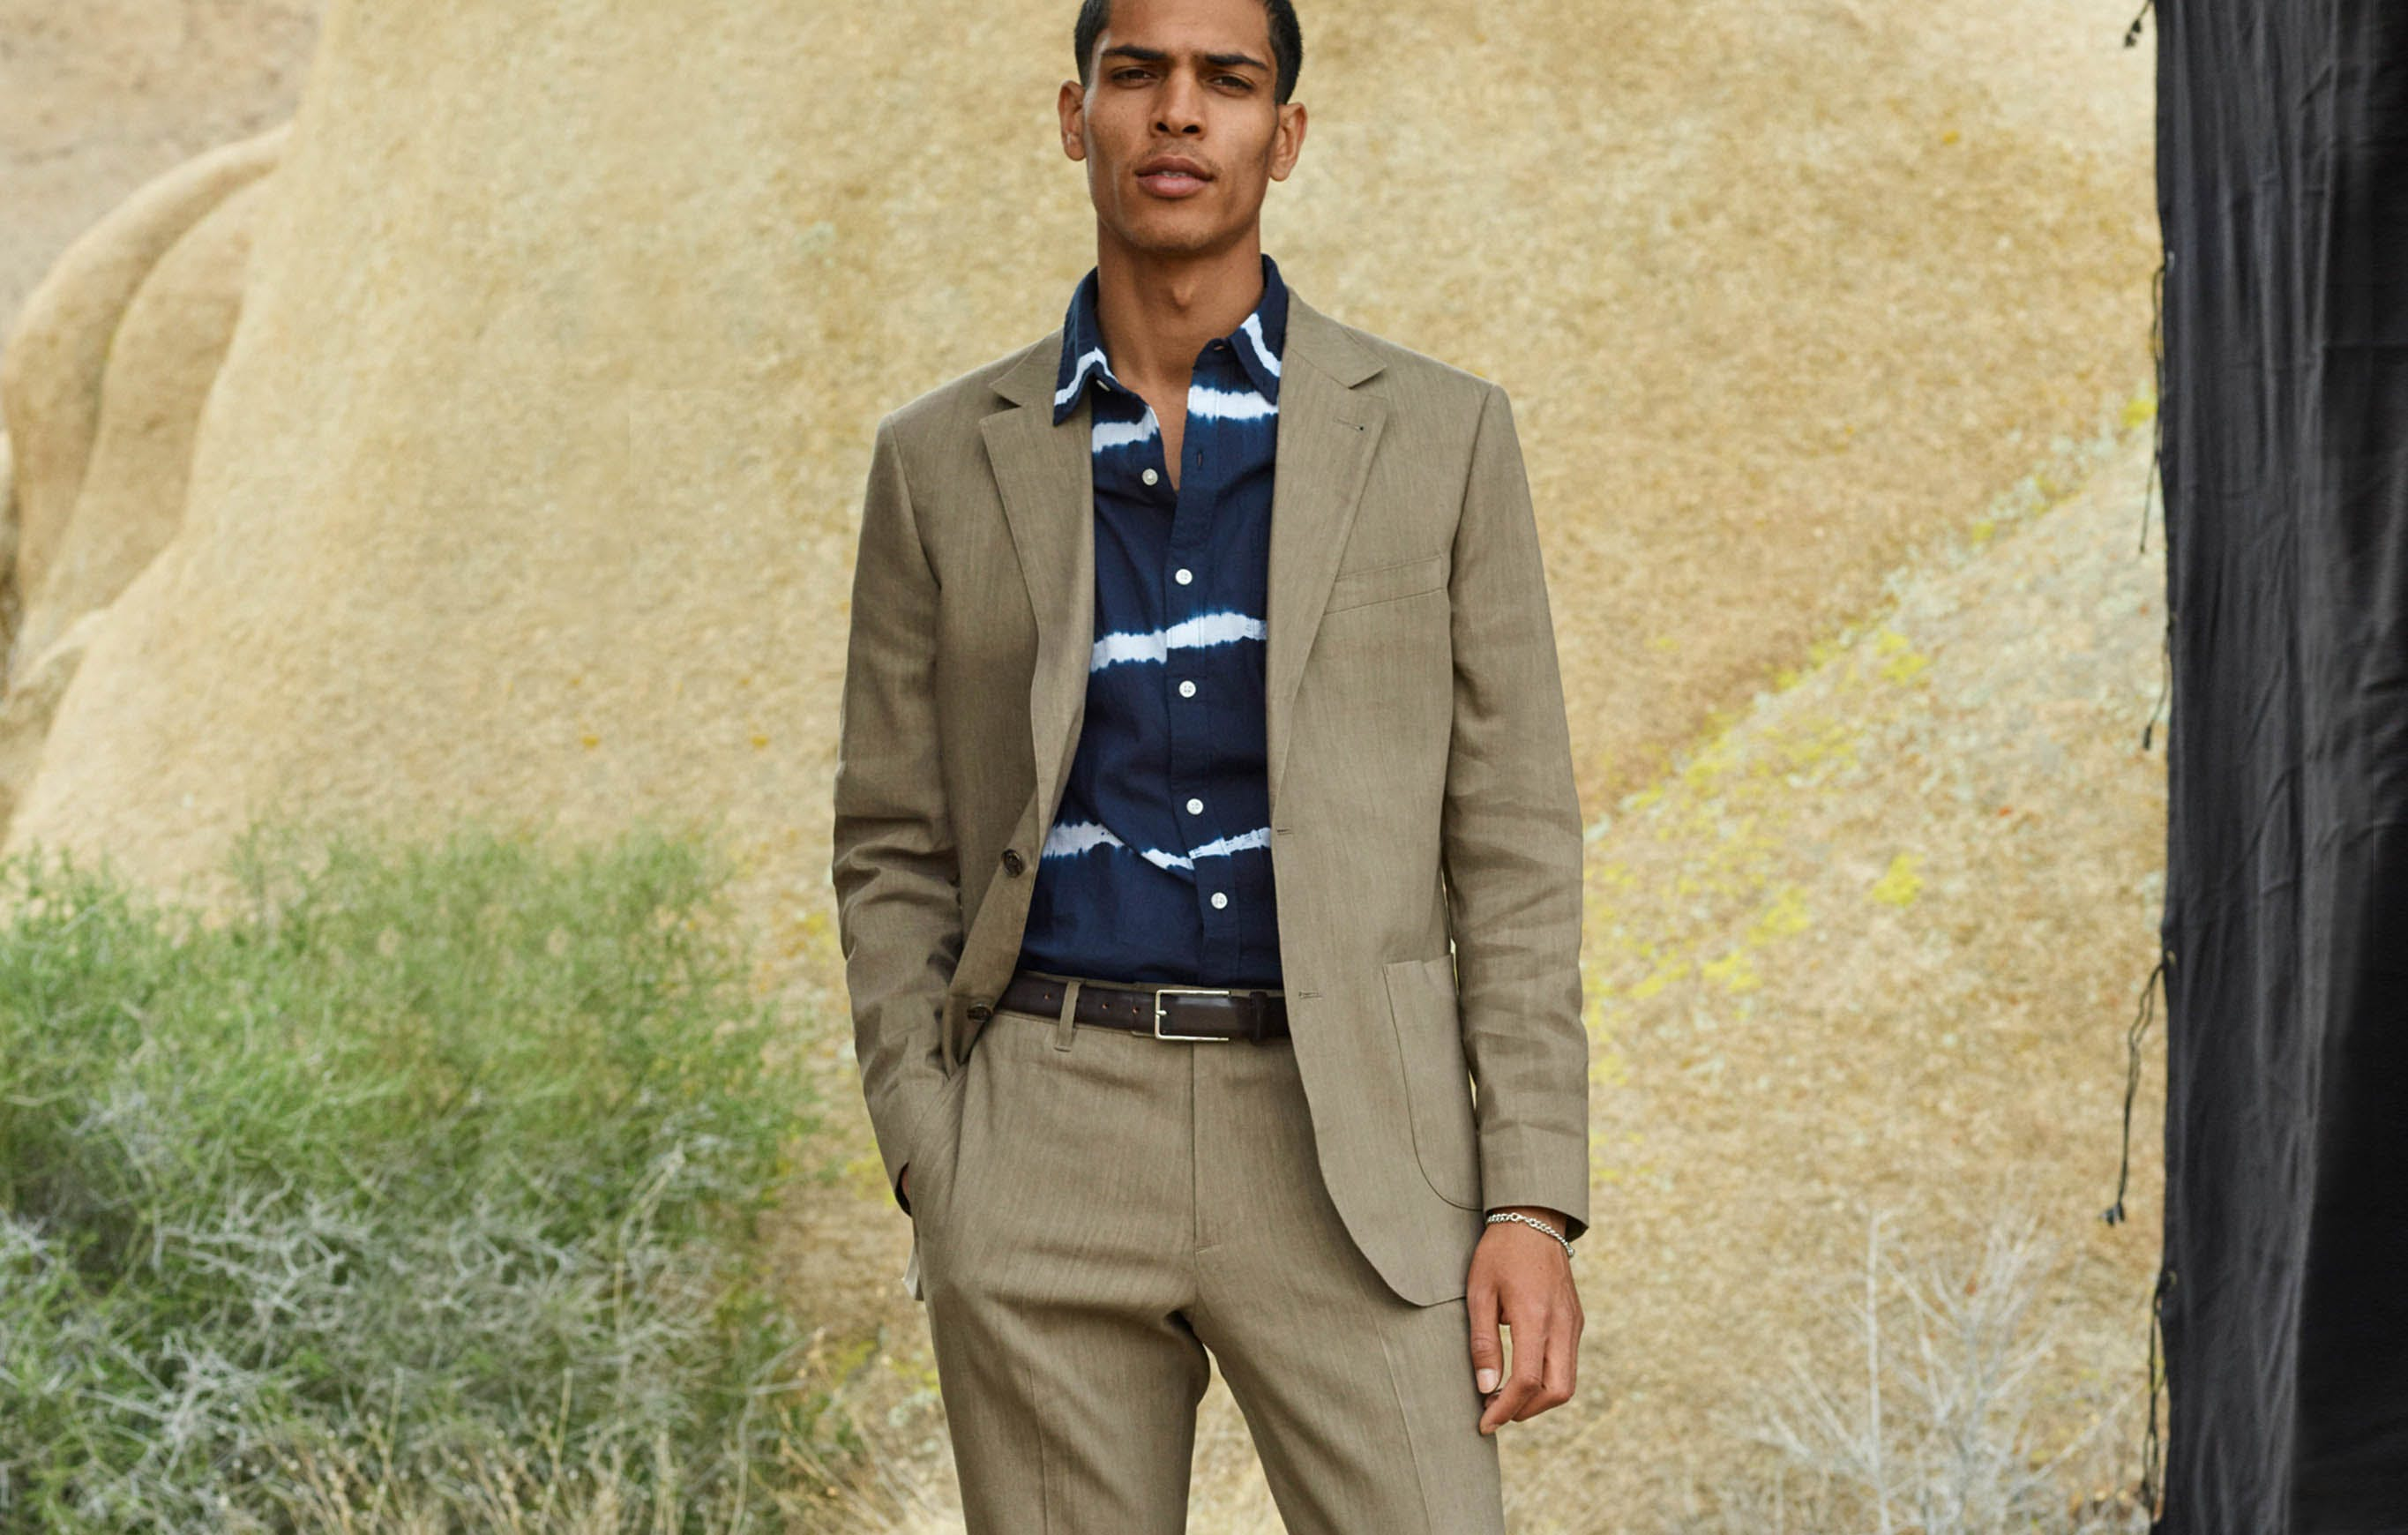 The white stripes on this navy Riviera were created by tying it off with strings and dipping it in a navy dye bath. Dress it up under this slightly casual brown suit for a sharp, but still relaxed, summer look.